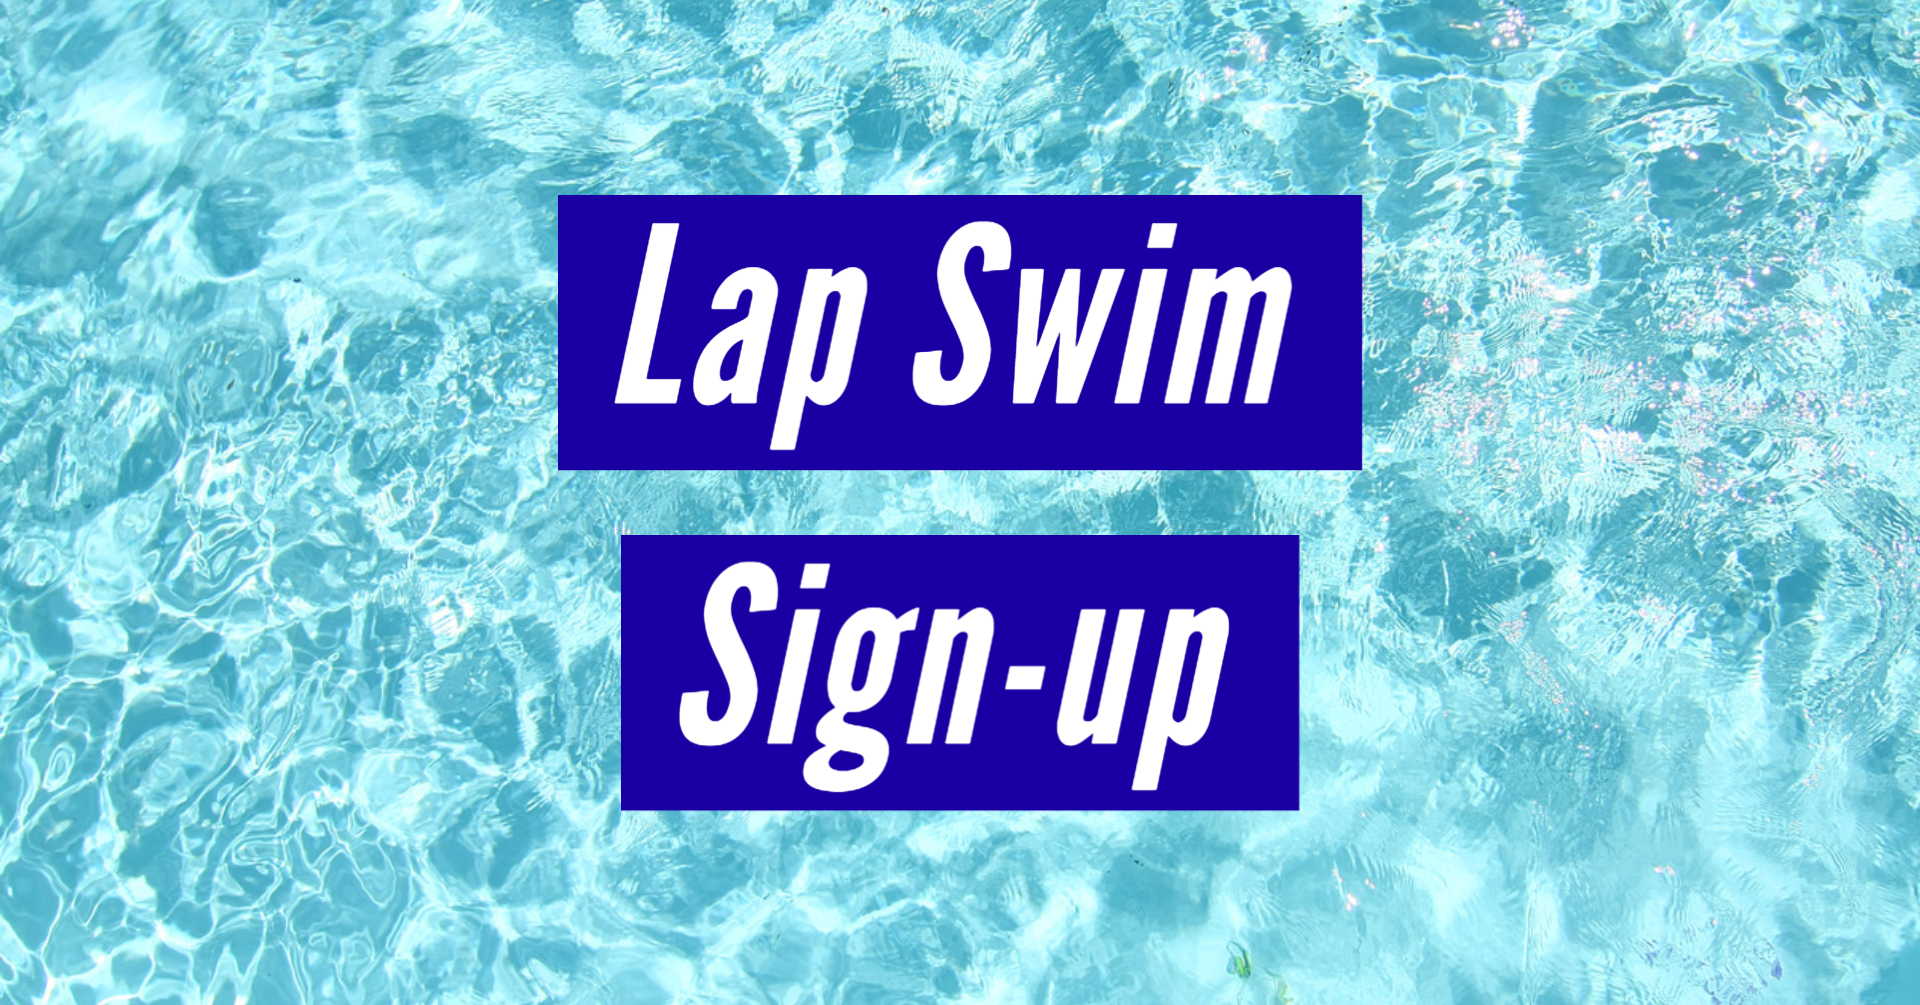 Lap Swim Sign-up